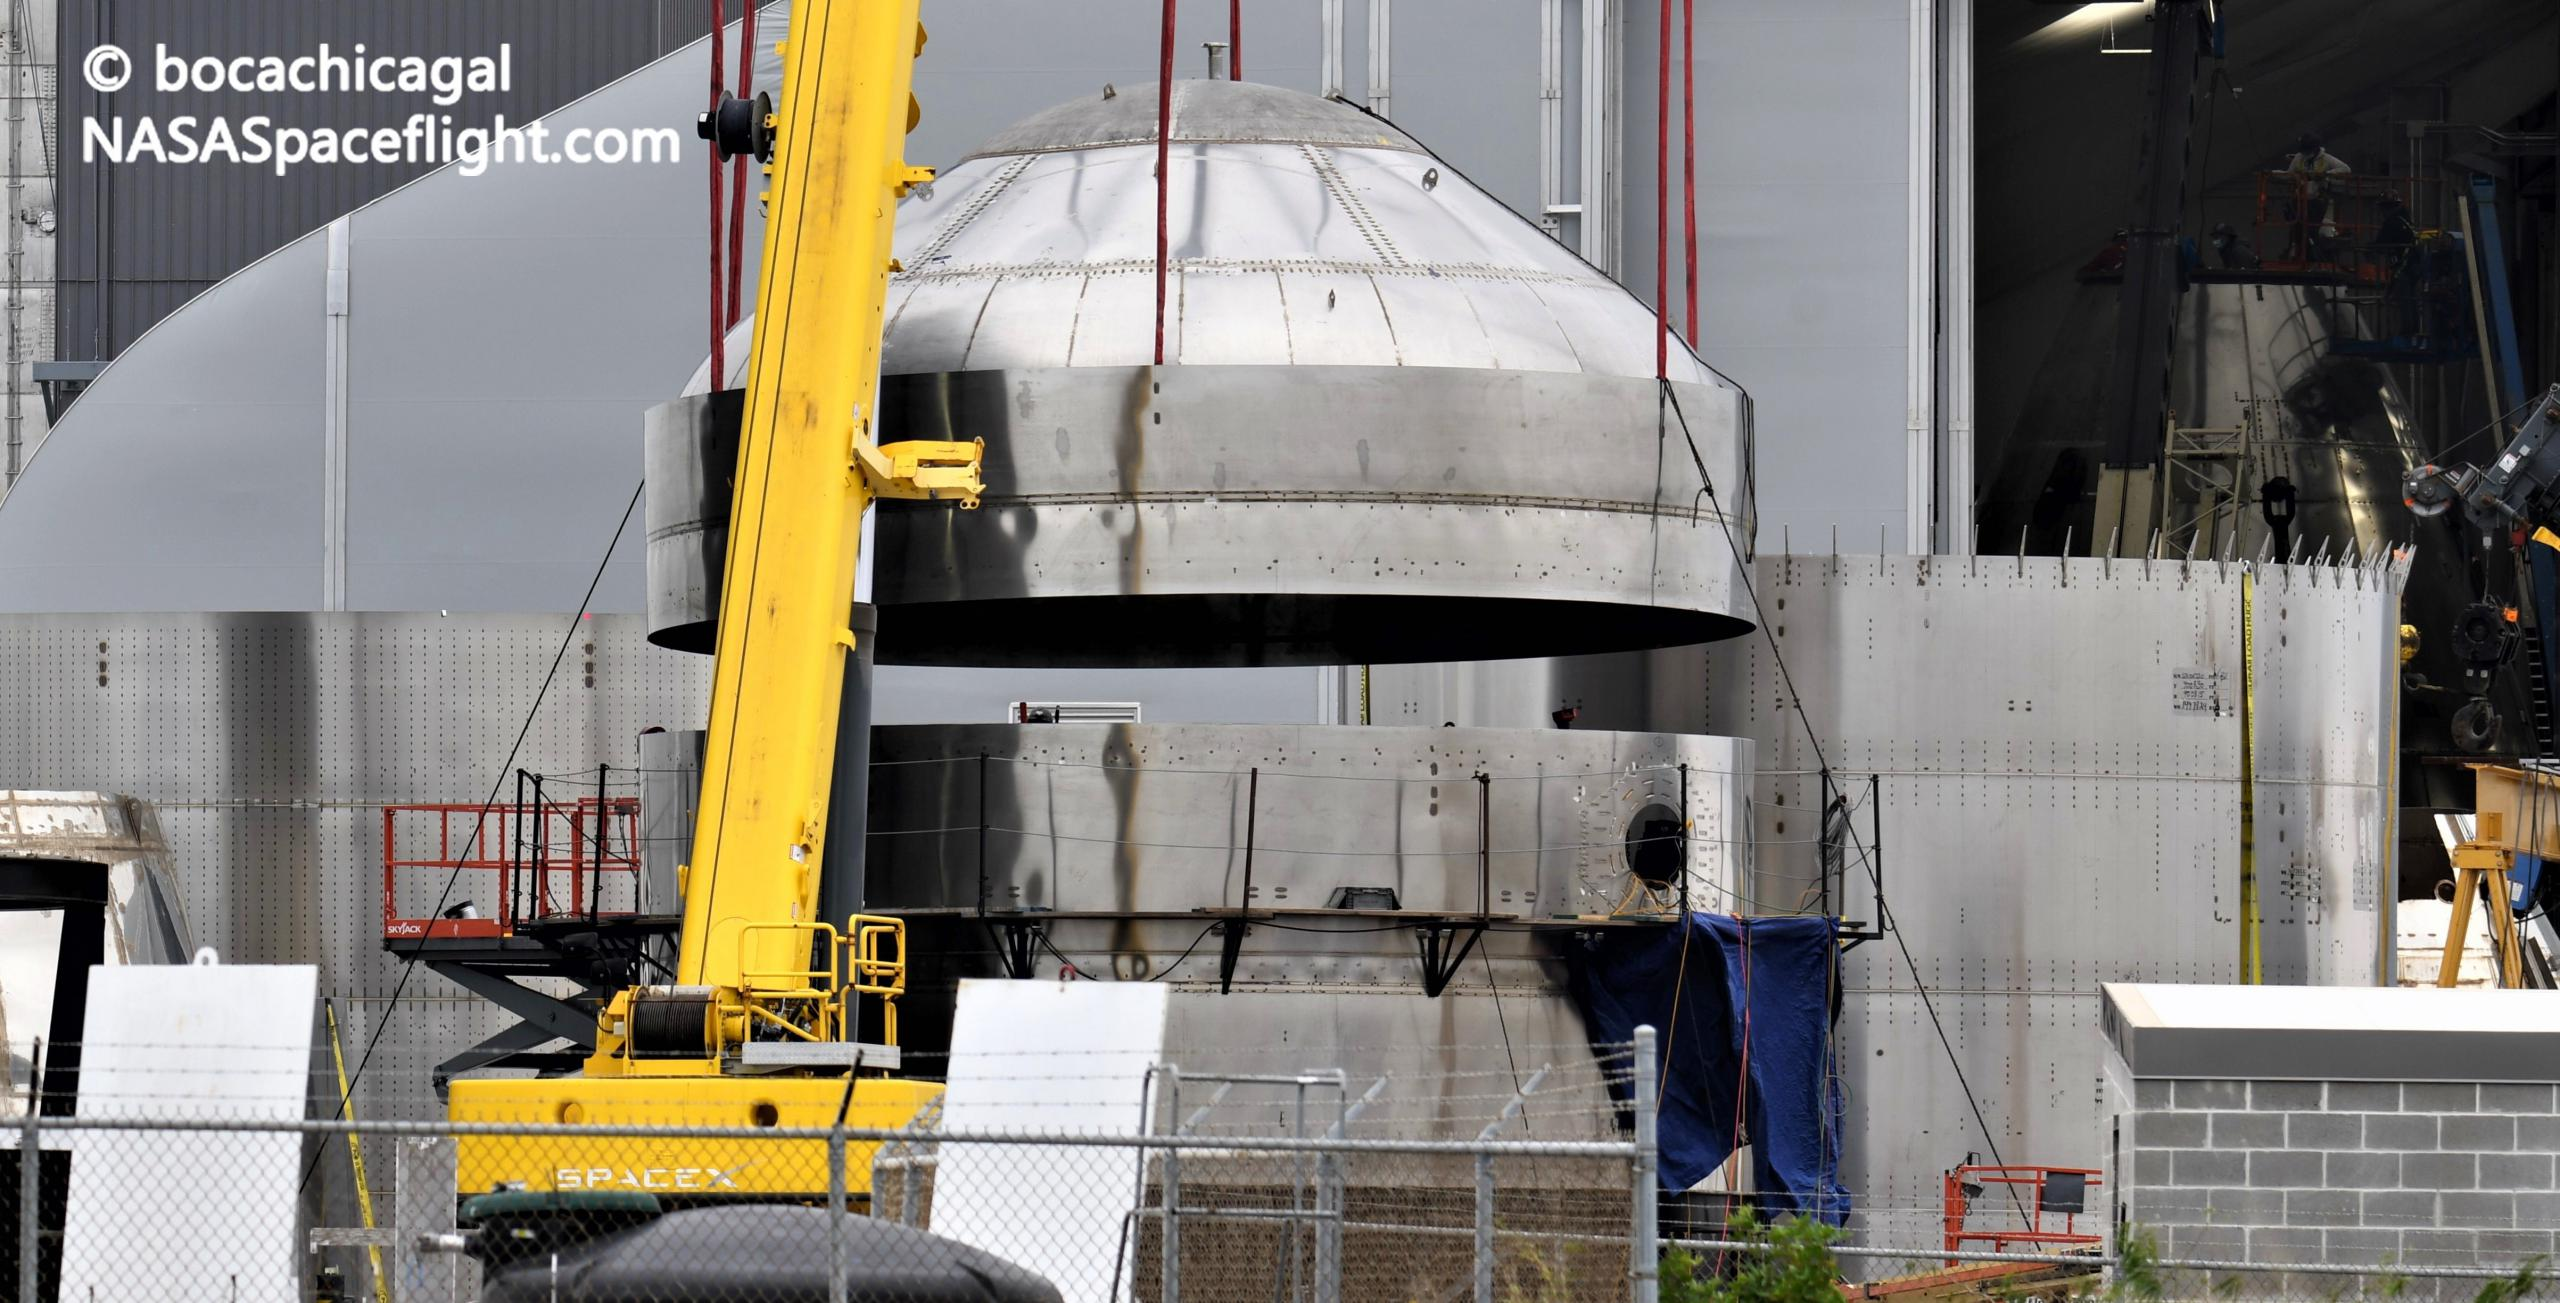 Starship Boca Chica 011221 (NASASpaceflight – bocachicagal) test tank SN7.2 integration 3 crop (c)